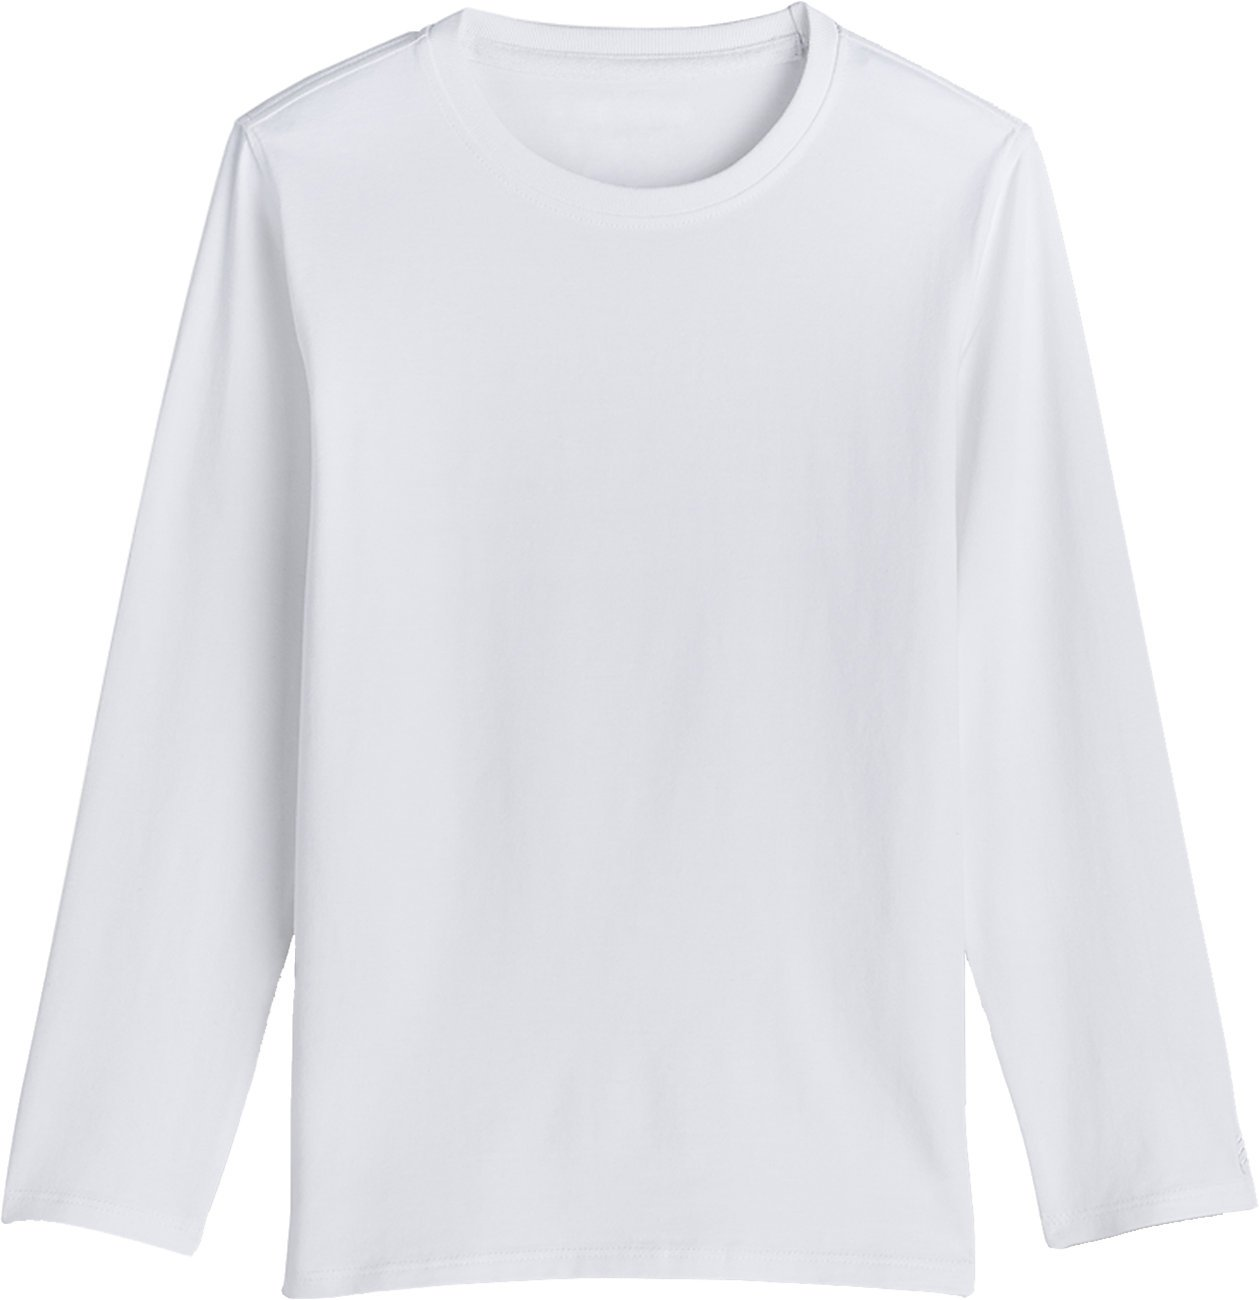 Coolibar UPF 50+ Kids' Long Sleeve Everyday T-Shirt - Sun Protective (X-Large- White)